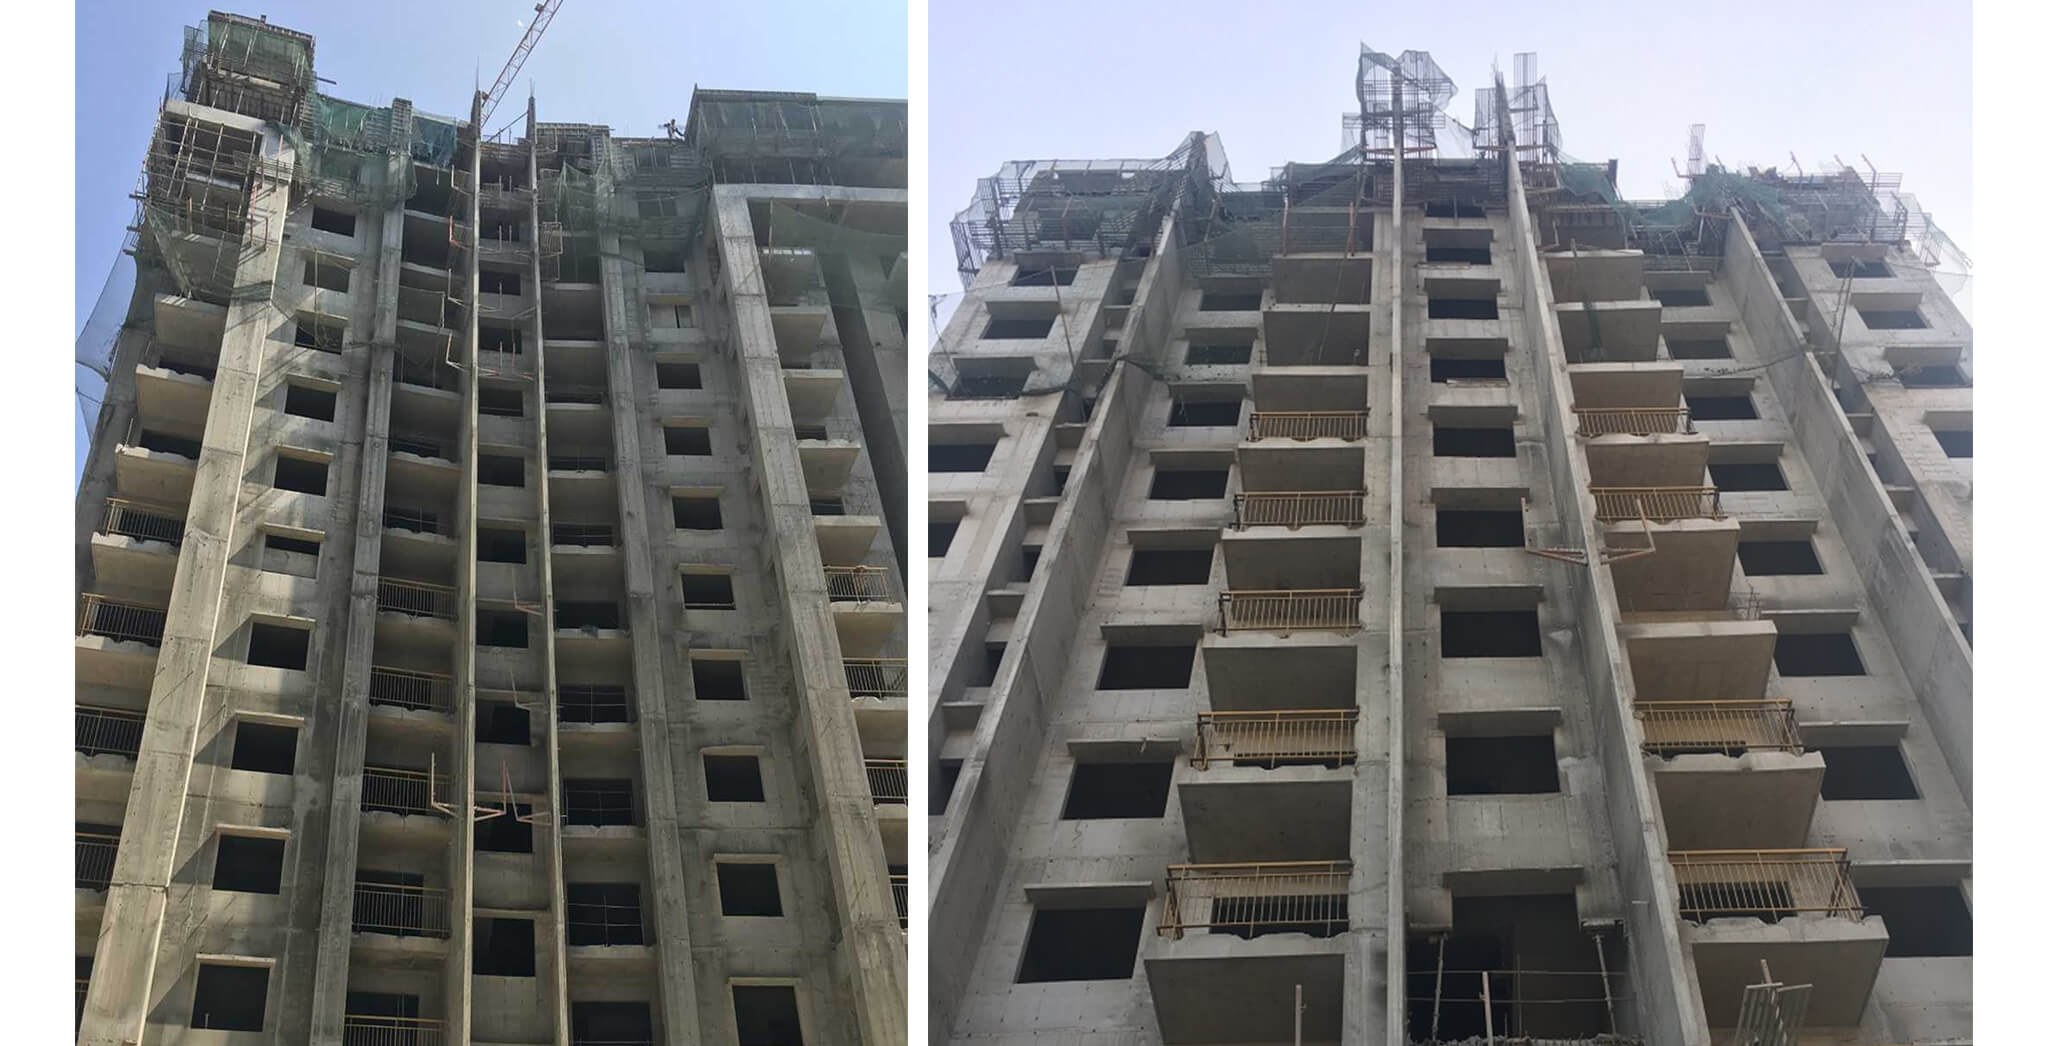 Feb 2018 - Crimson Block, S wing: 3 BHK Terrace work-in-progress; 2 BHK Terrace floor in progress